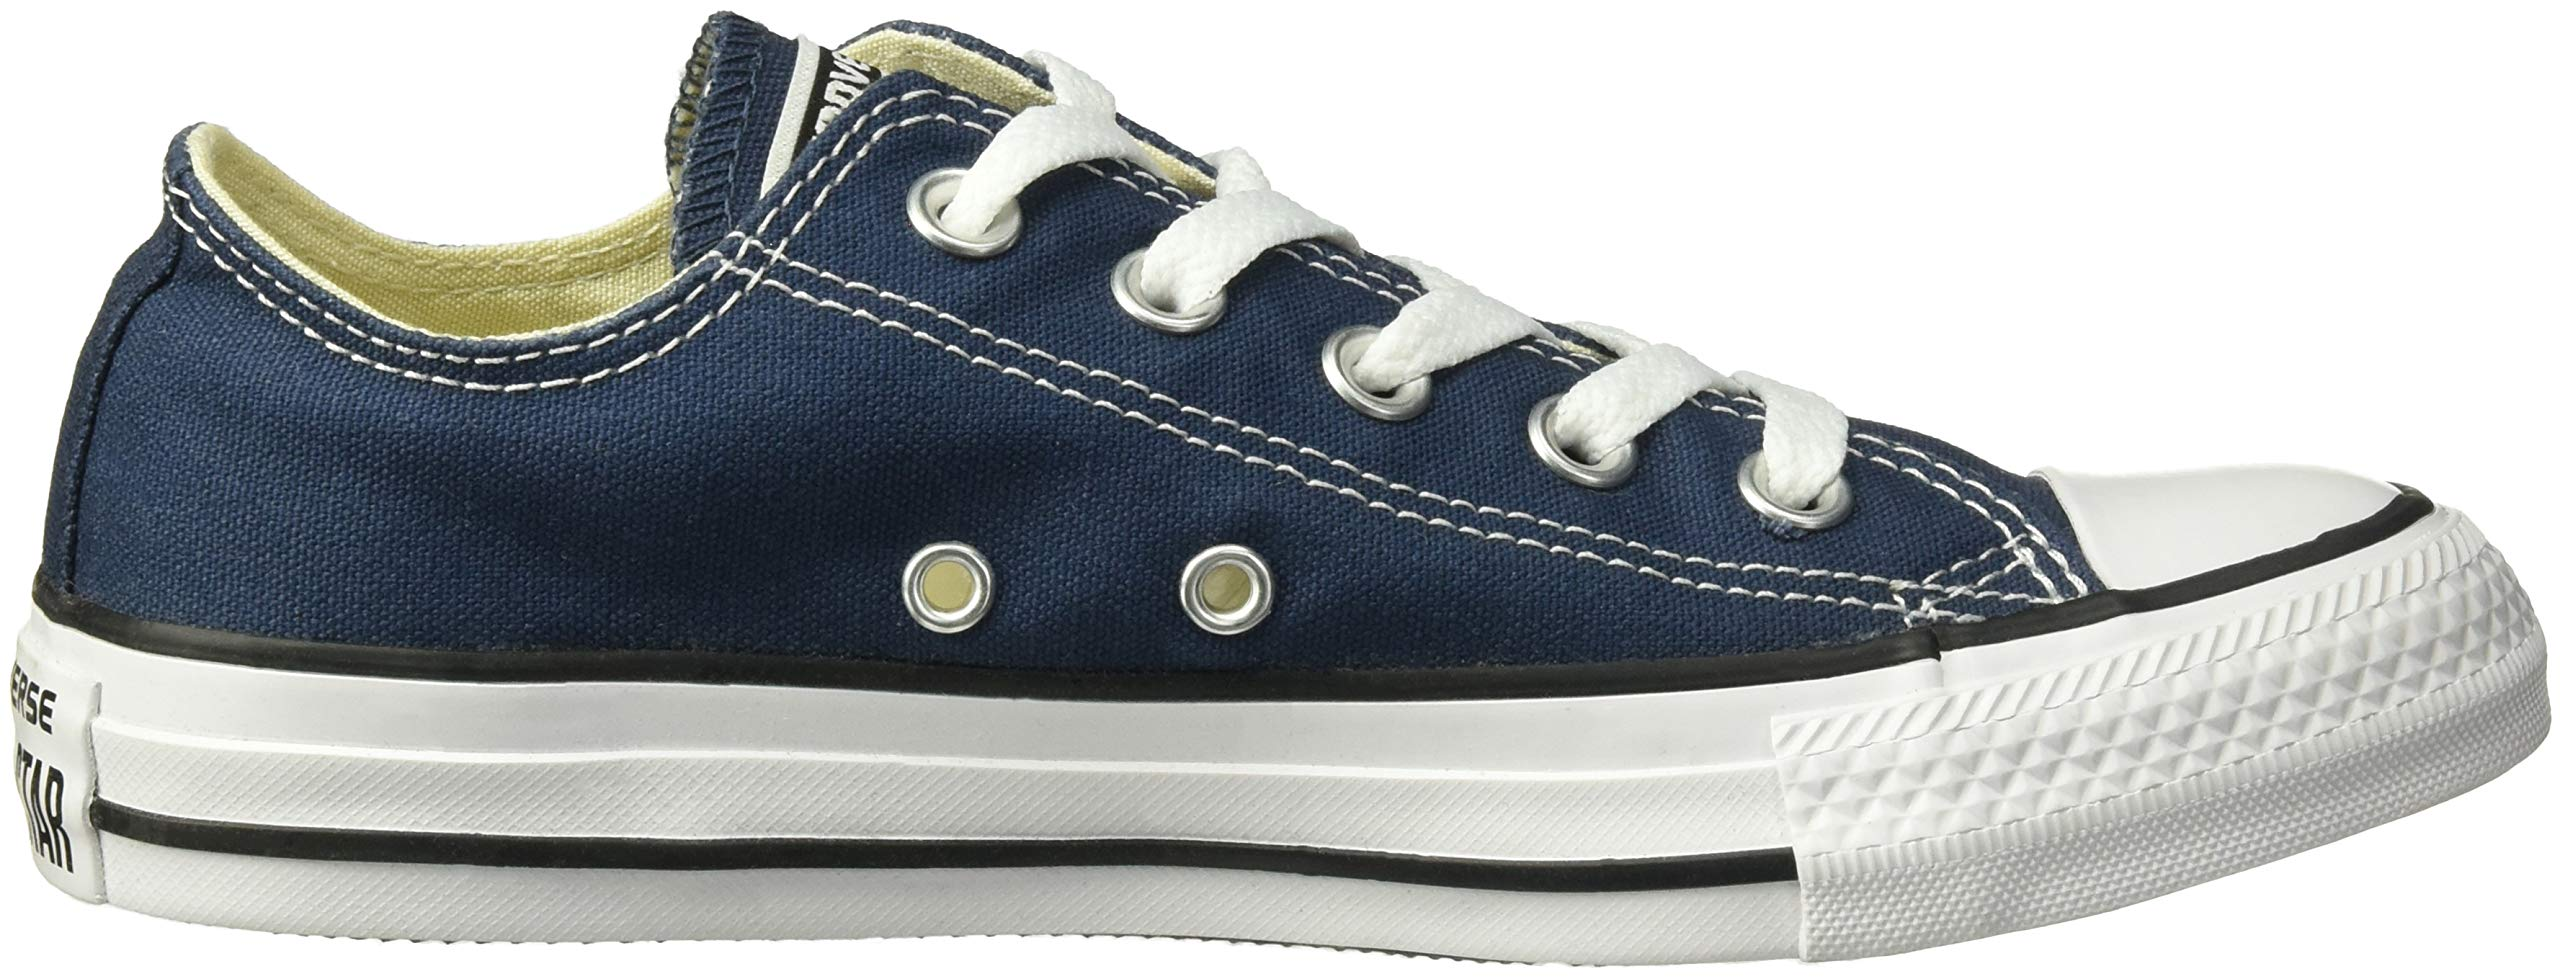 Converse Unisex Chuck Taylor All Star Low Top Navy Sneakers - 12MN-14WO B(M) US by Converse (Image #7)